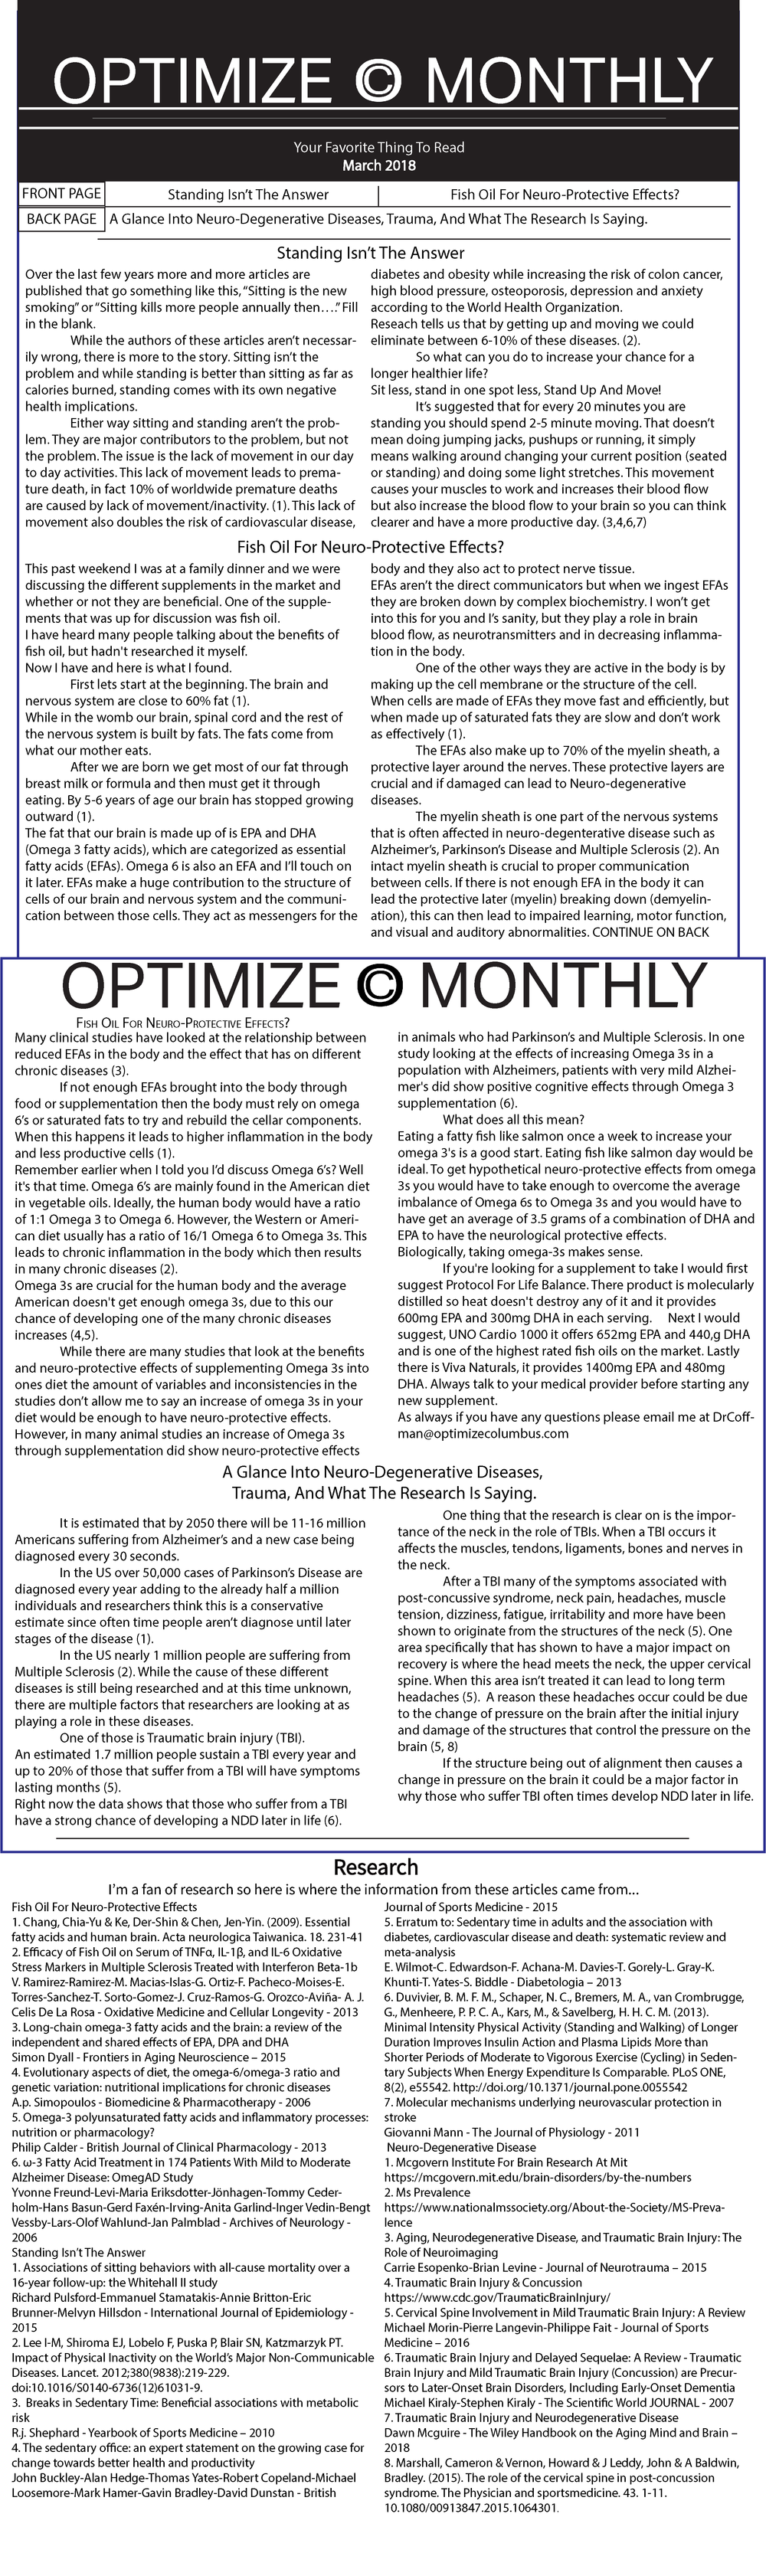 Optimize Monthly March '18 .png